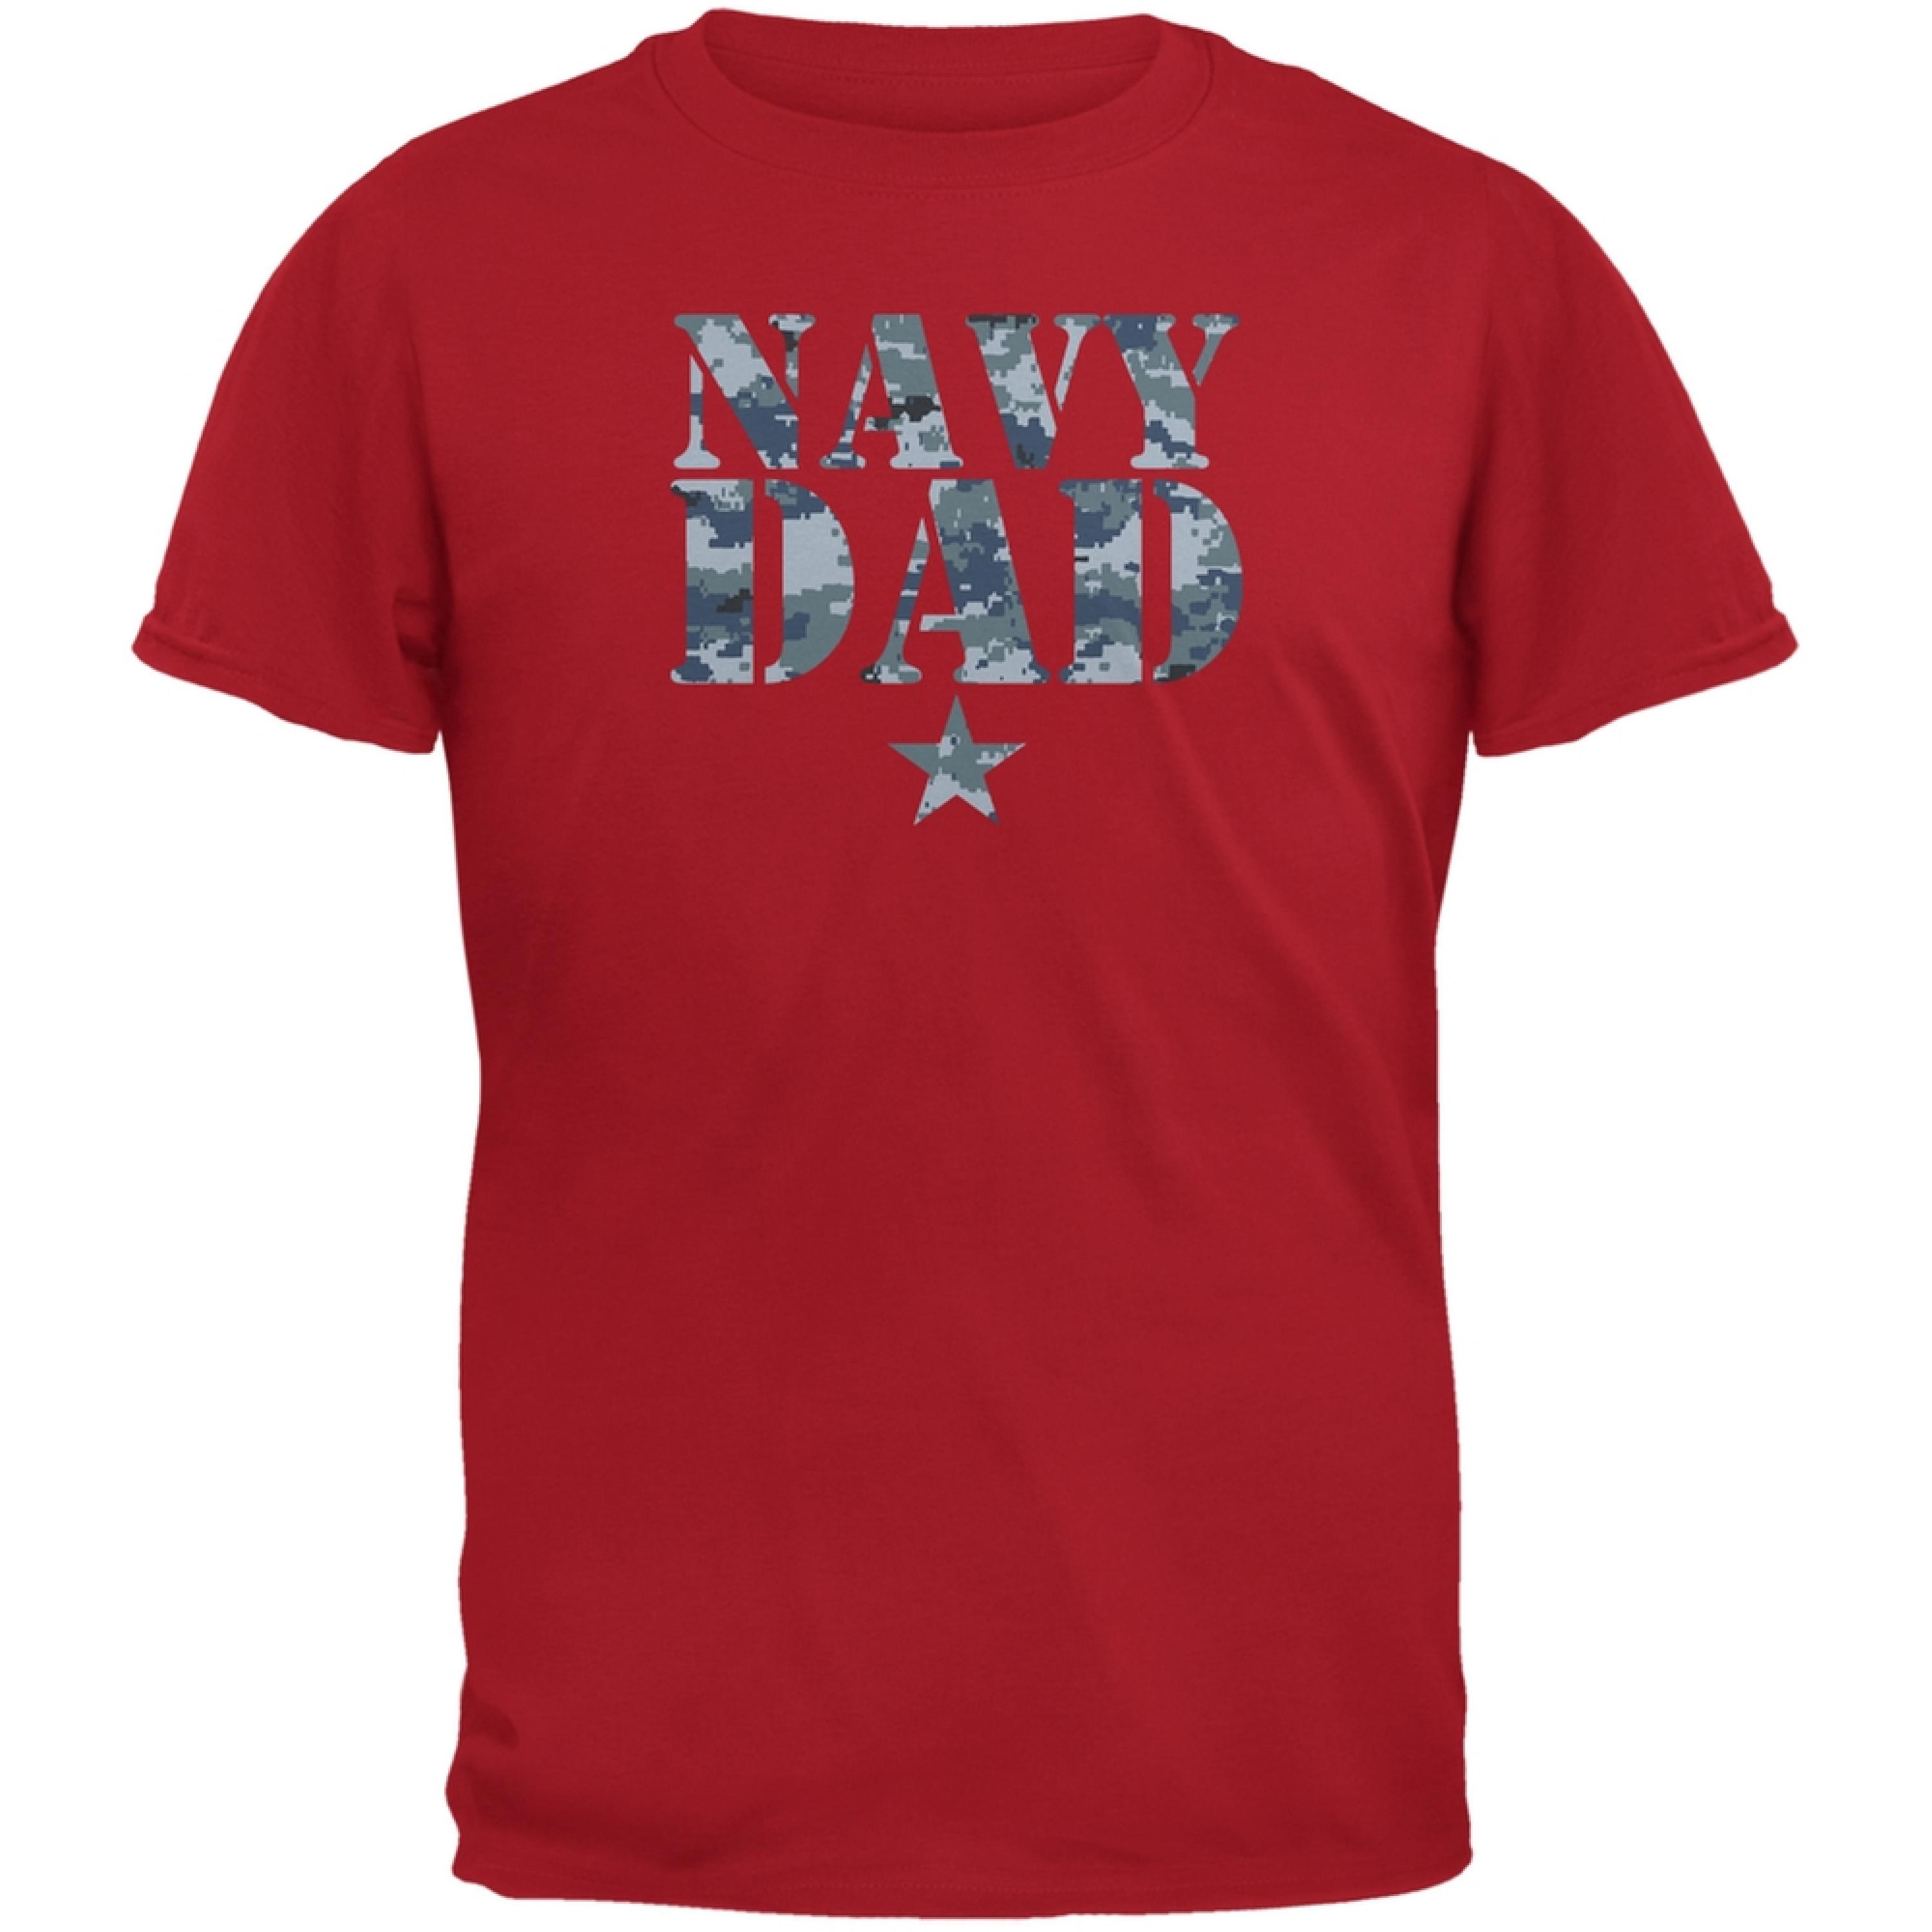 Navy Dad Red Adult T-Shirt